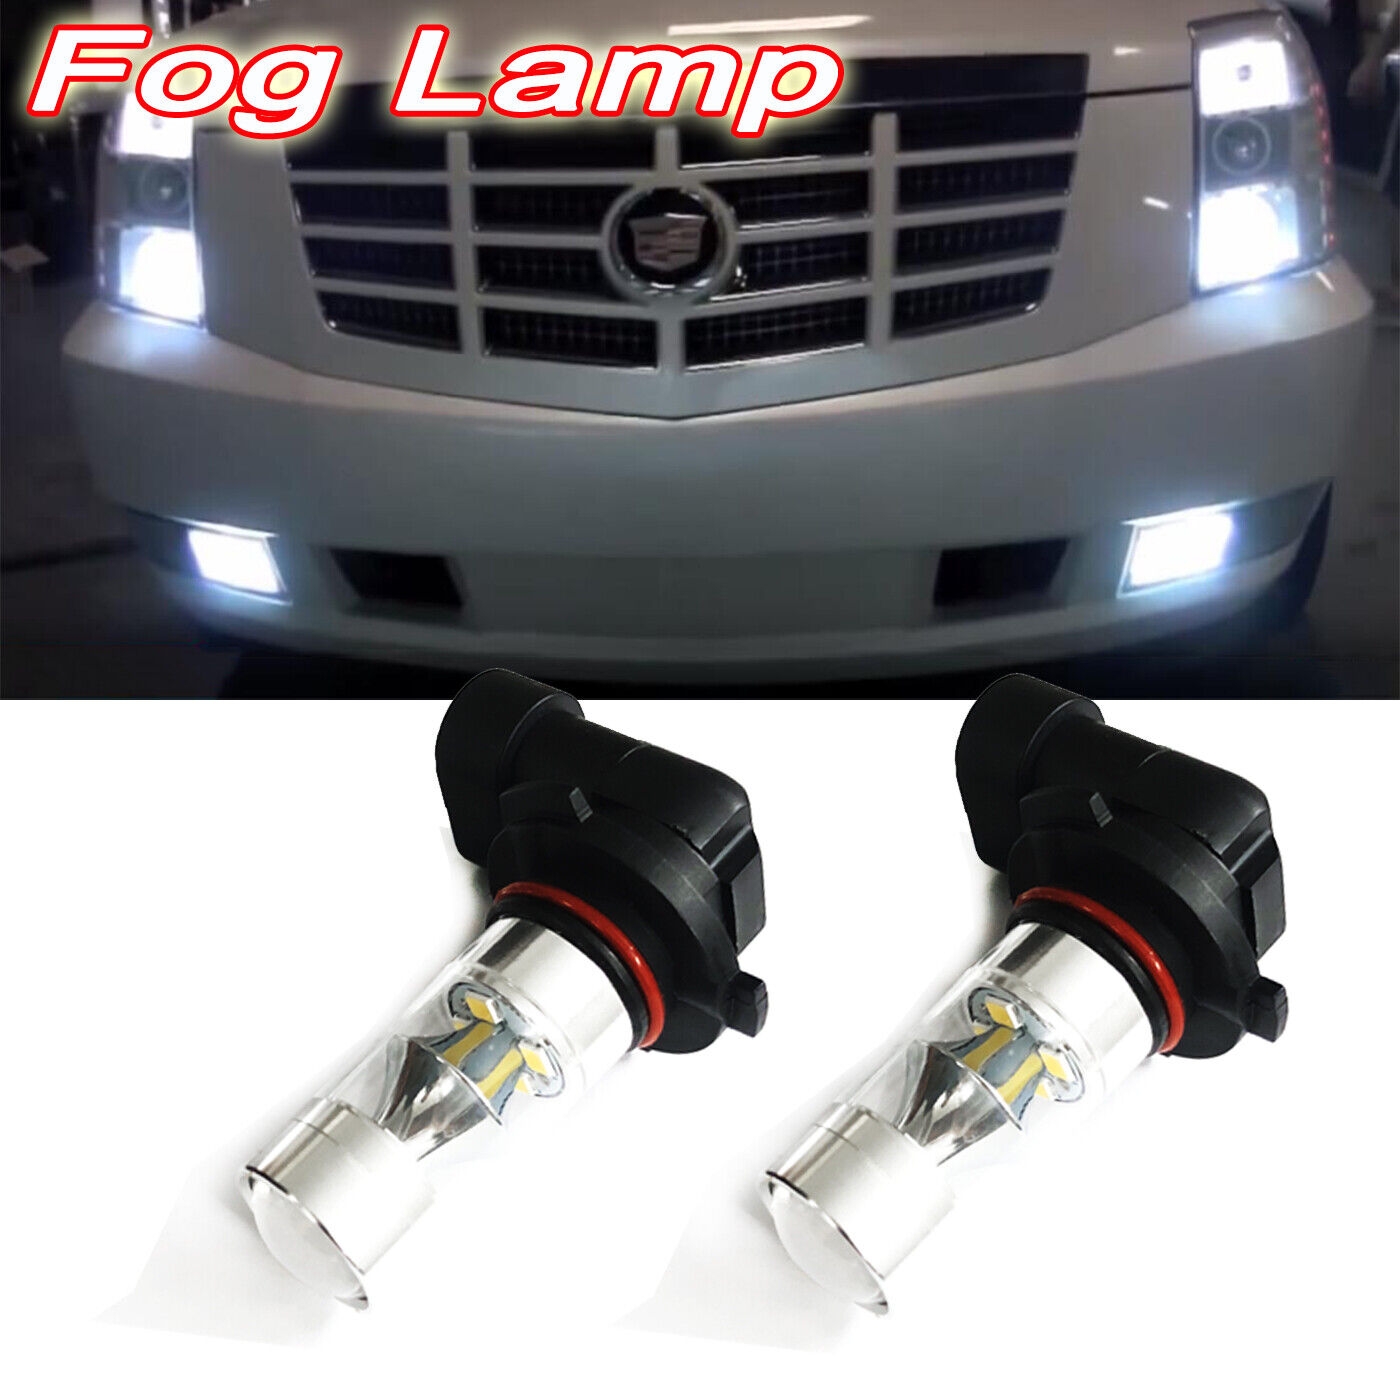 Details About 2x Front Fog Light Bulbs Led Fog Lamp For 2007 2014 Cadillac Escalade Esv Ext